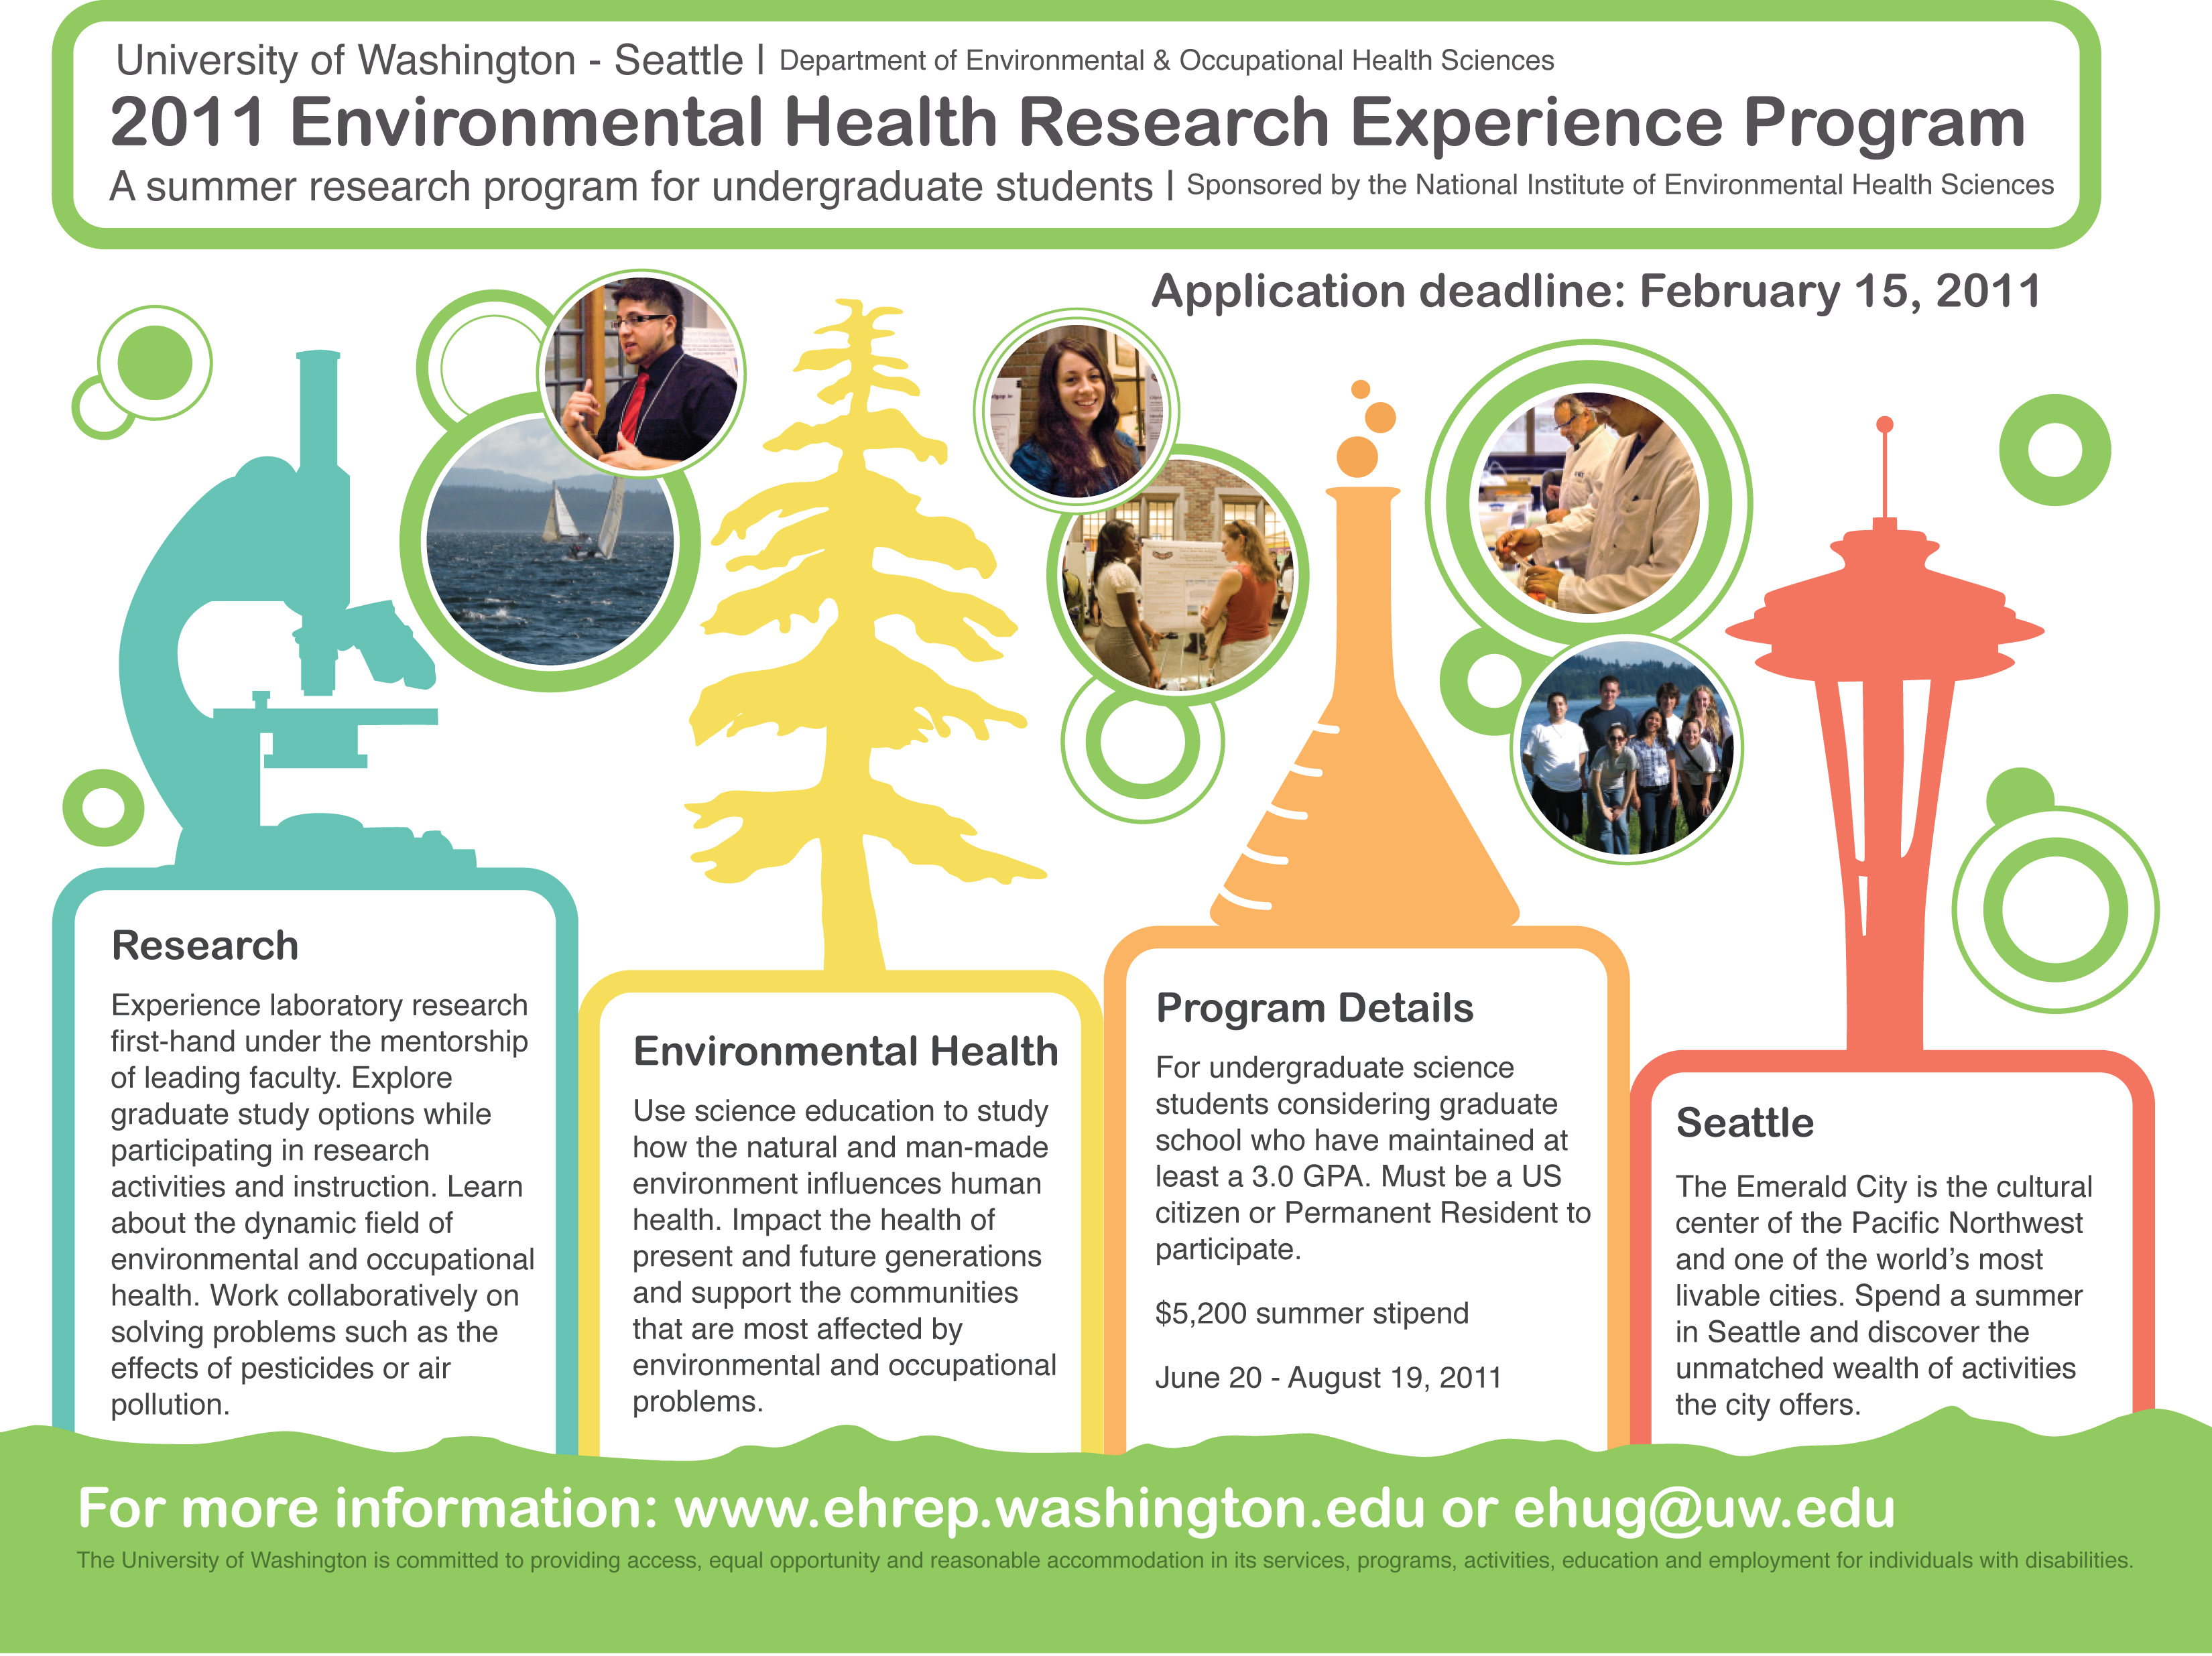 What are the environmental health issues